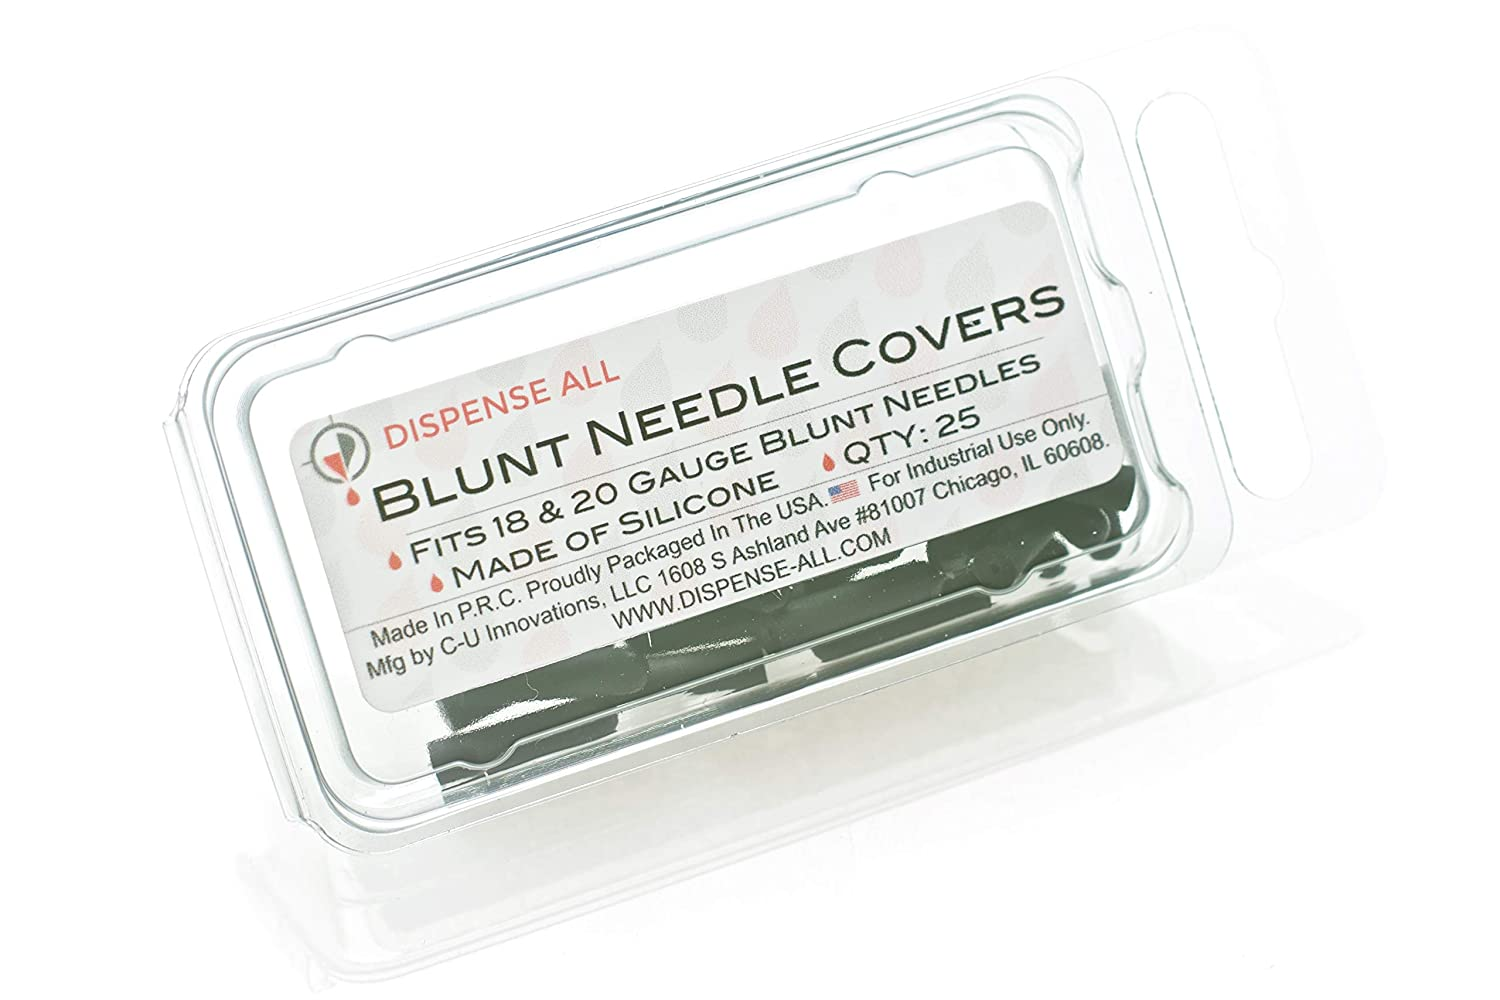 Dispense All - Blunt Needle Covers Q 18 New Free Shipping Fits Black Gauge 20 Oakland Mall